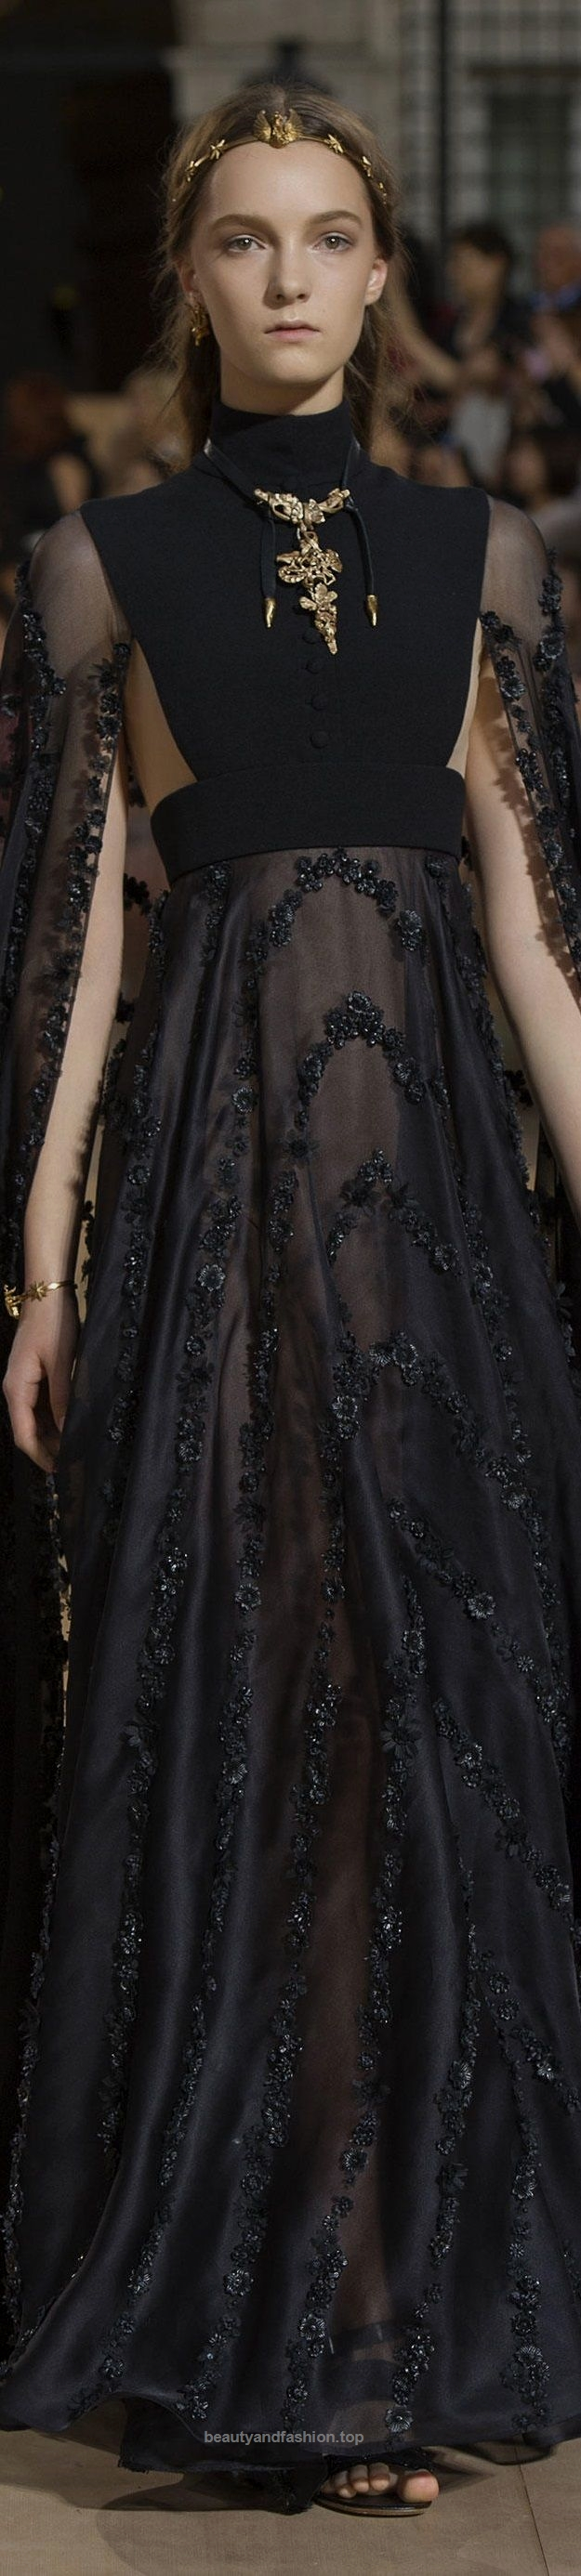 valentino evening gowns sale – Fashion dresses